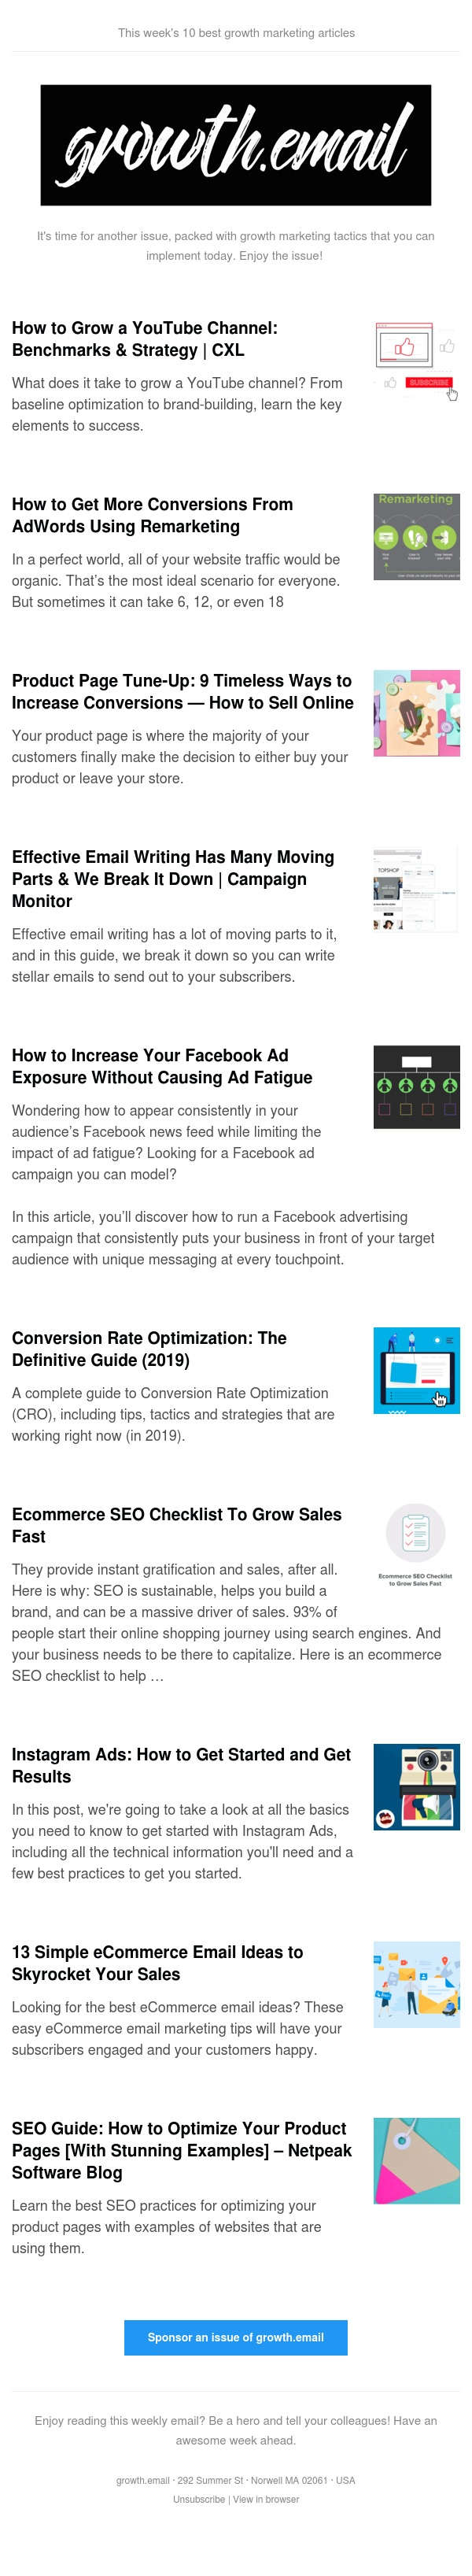 growth.email #93 YouTube Benchmarks & Strategy   Get More Conversions Using Remarketing   Product Page Tune-Up   Ecommerce SEO Checklist   Ecommerce Email Ideas To Skyrocket Your Sales